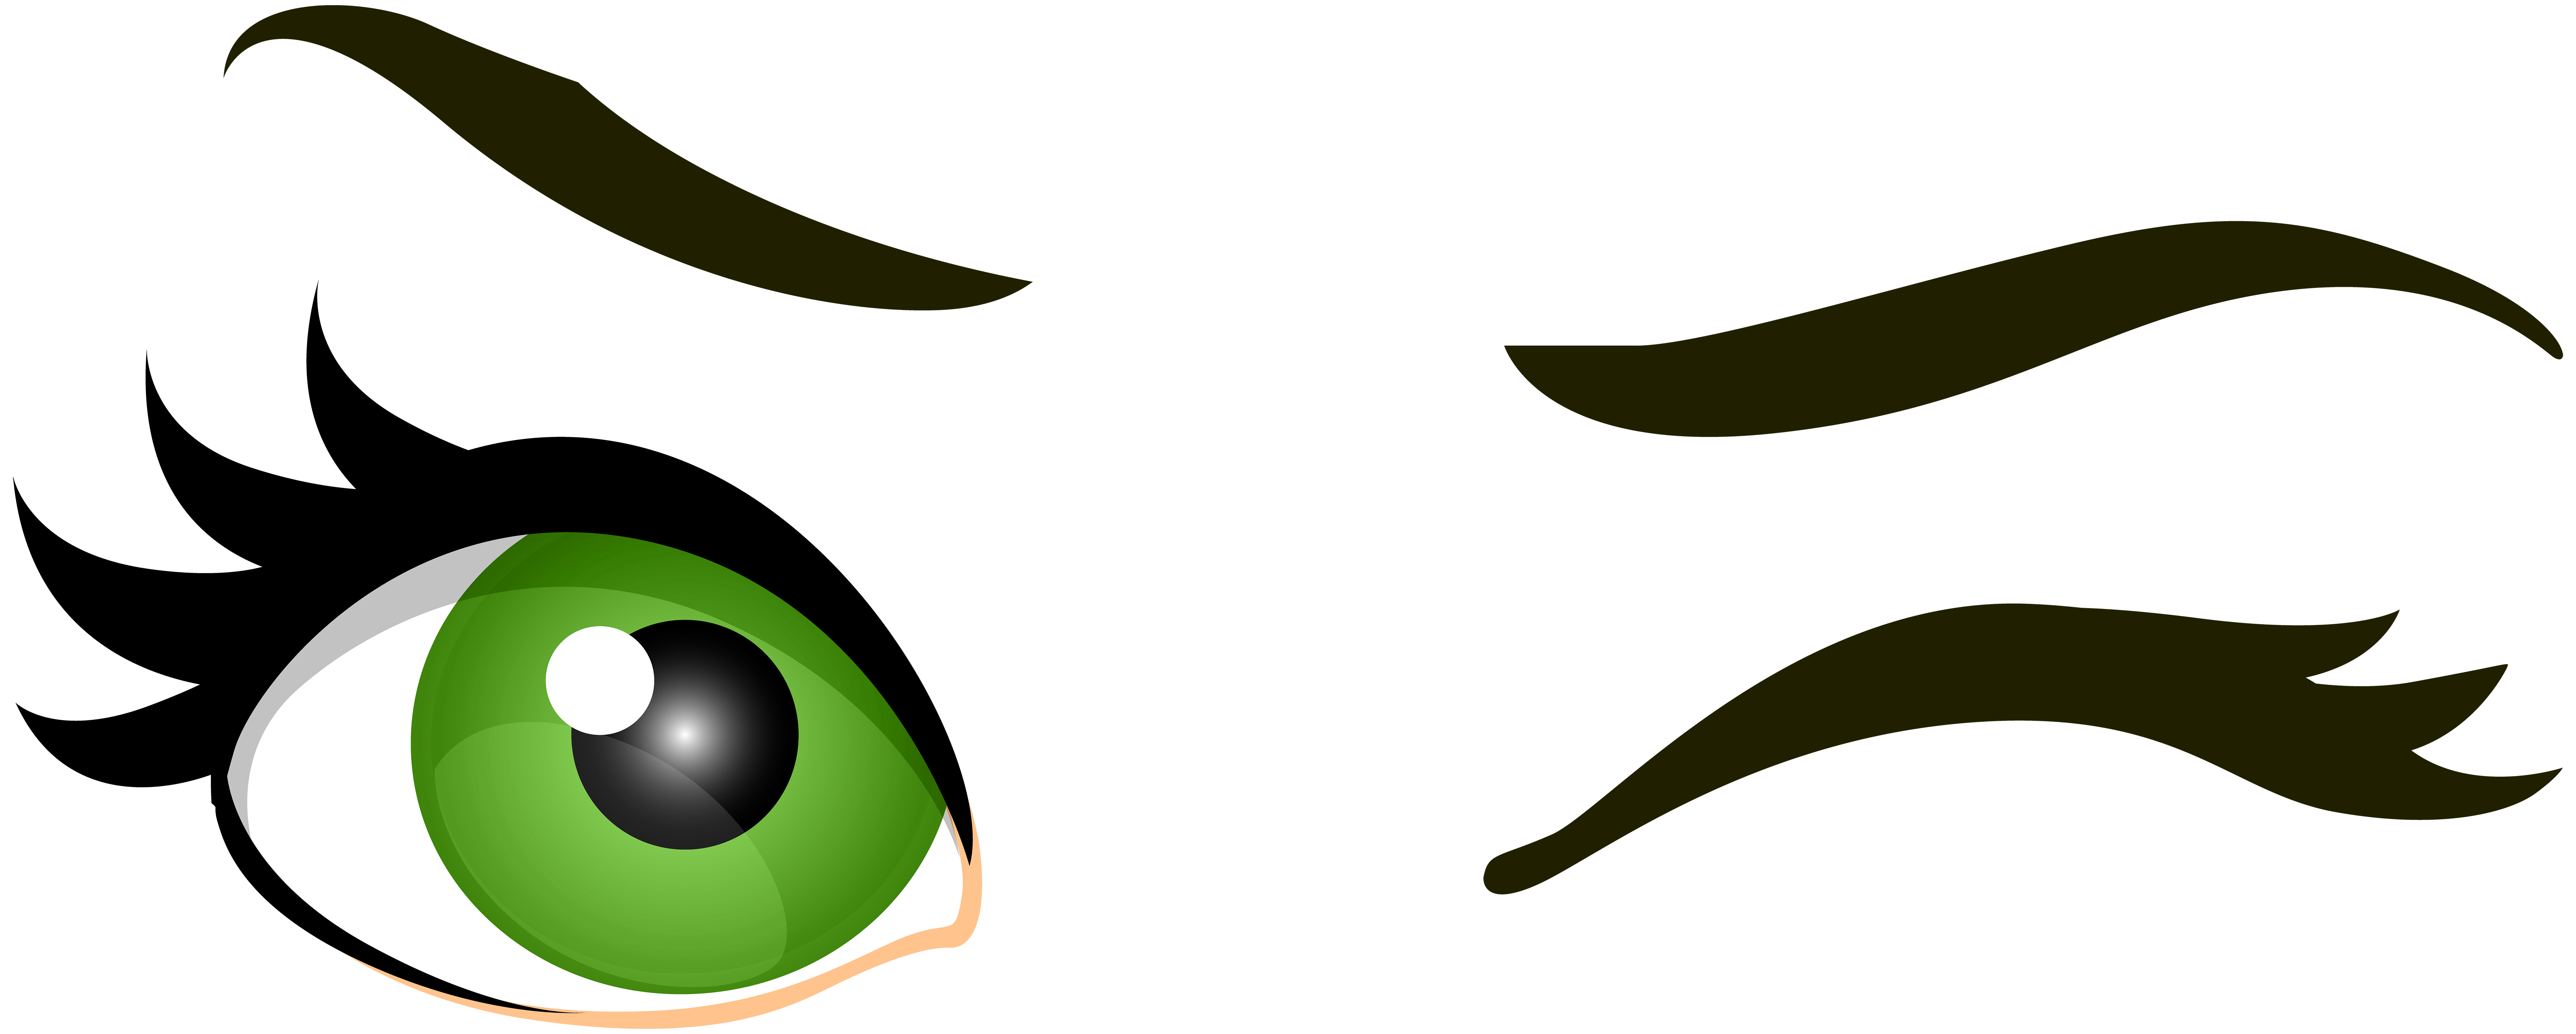 Green clipart green eye cute borders vectors animated black and png